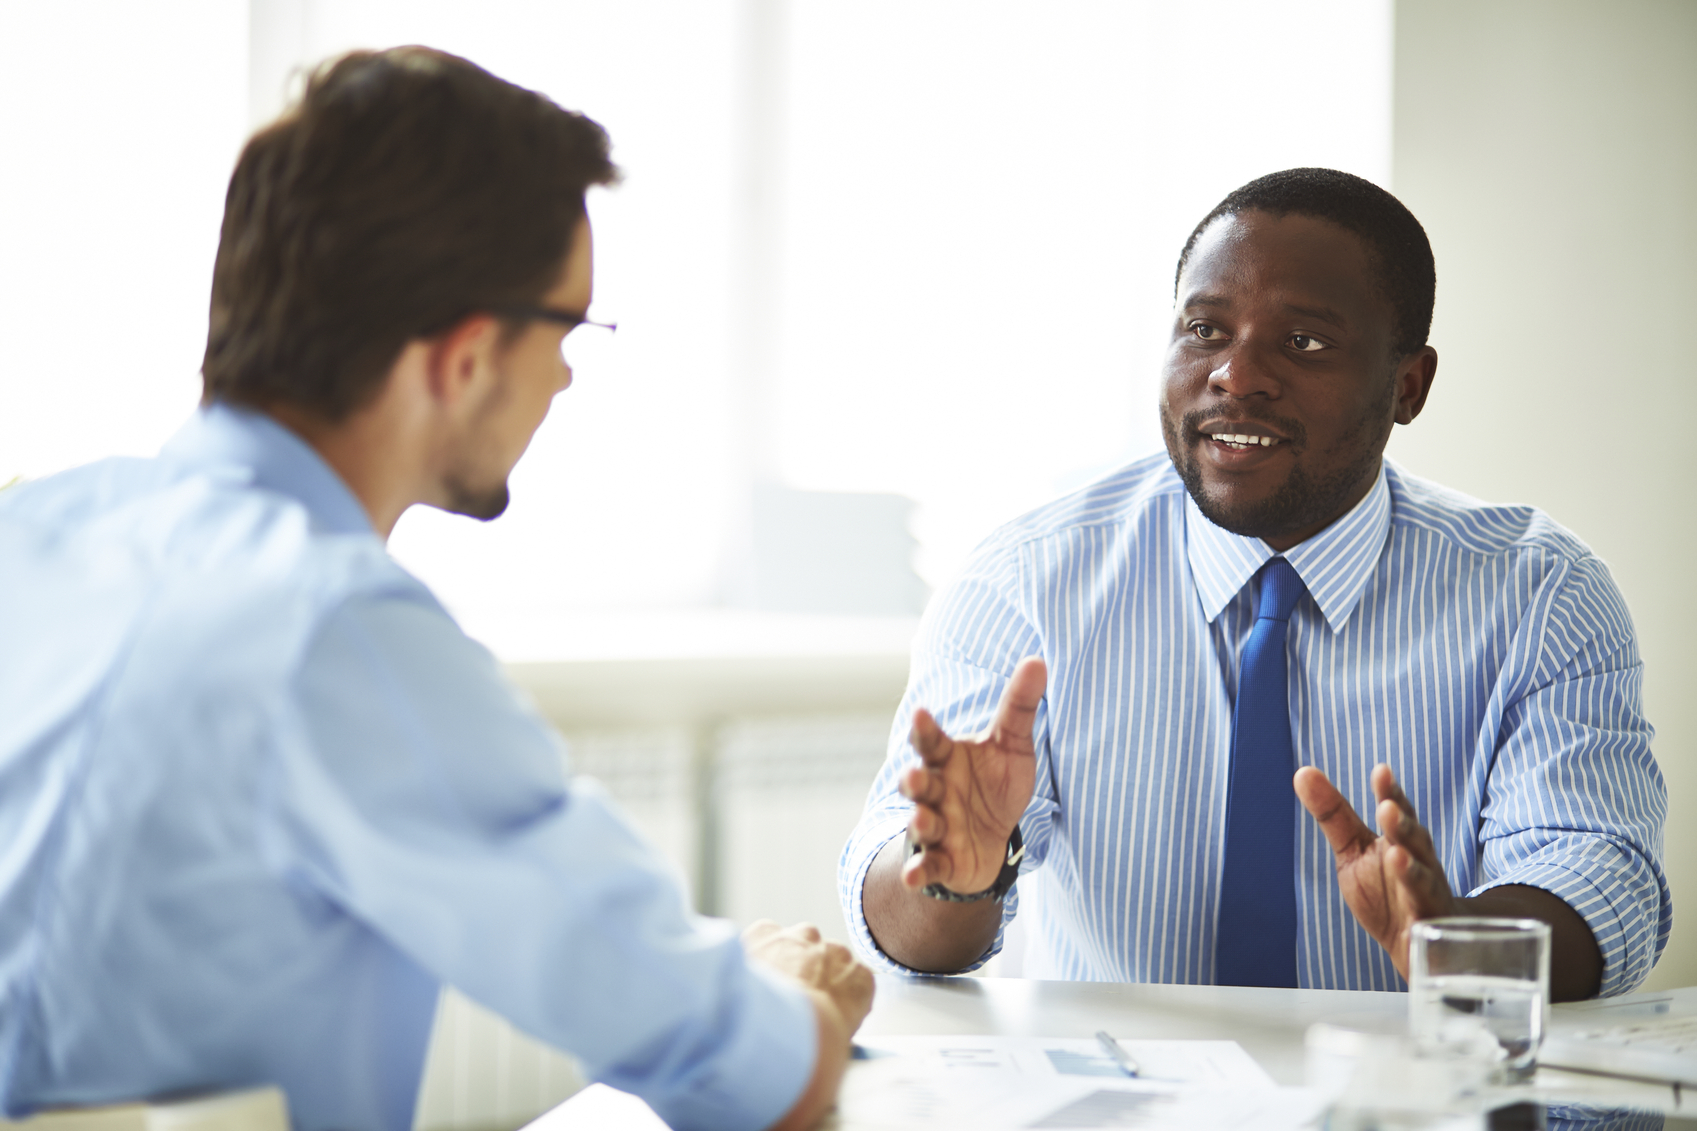 Stock photo of two businessmen having a discussion